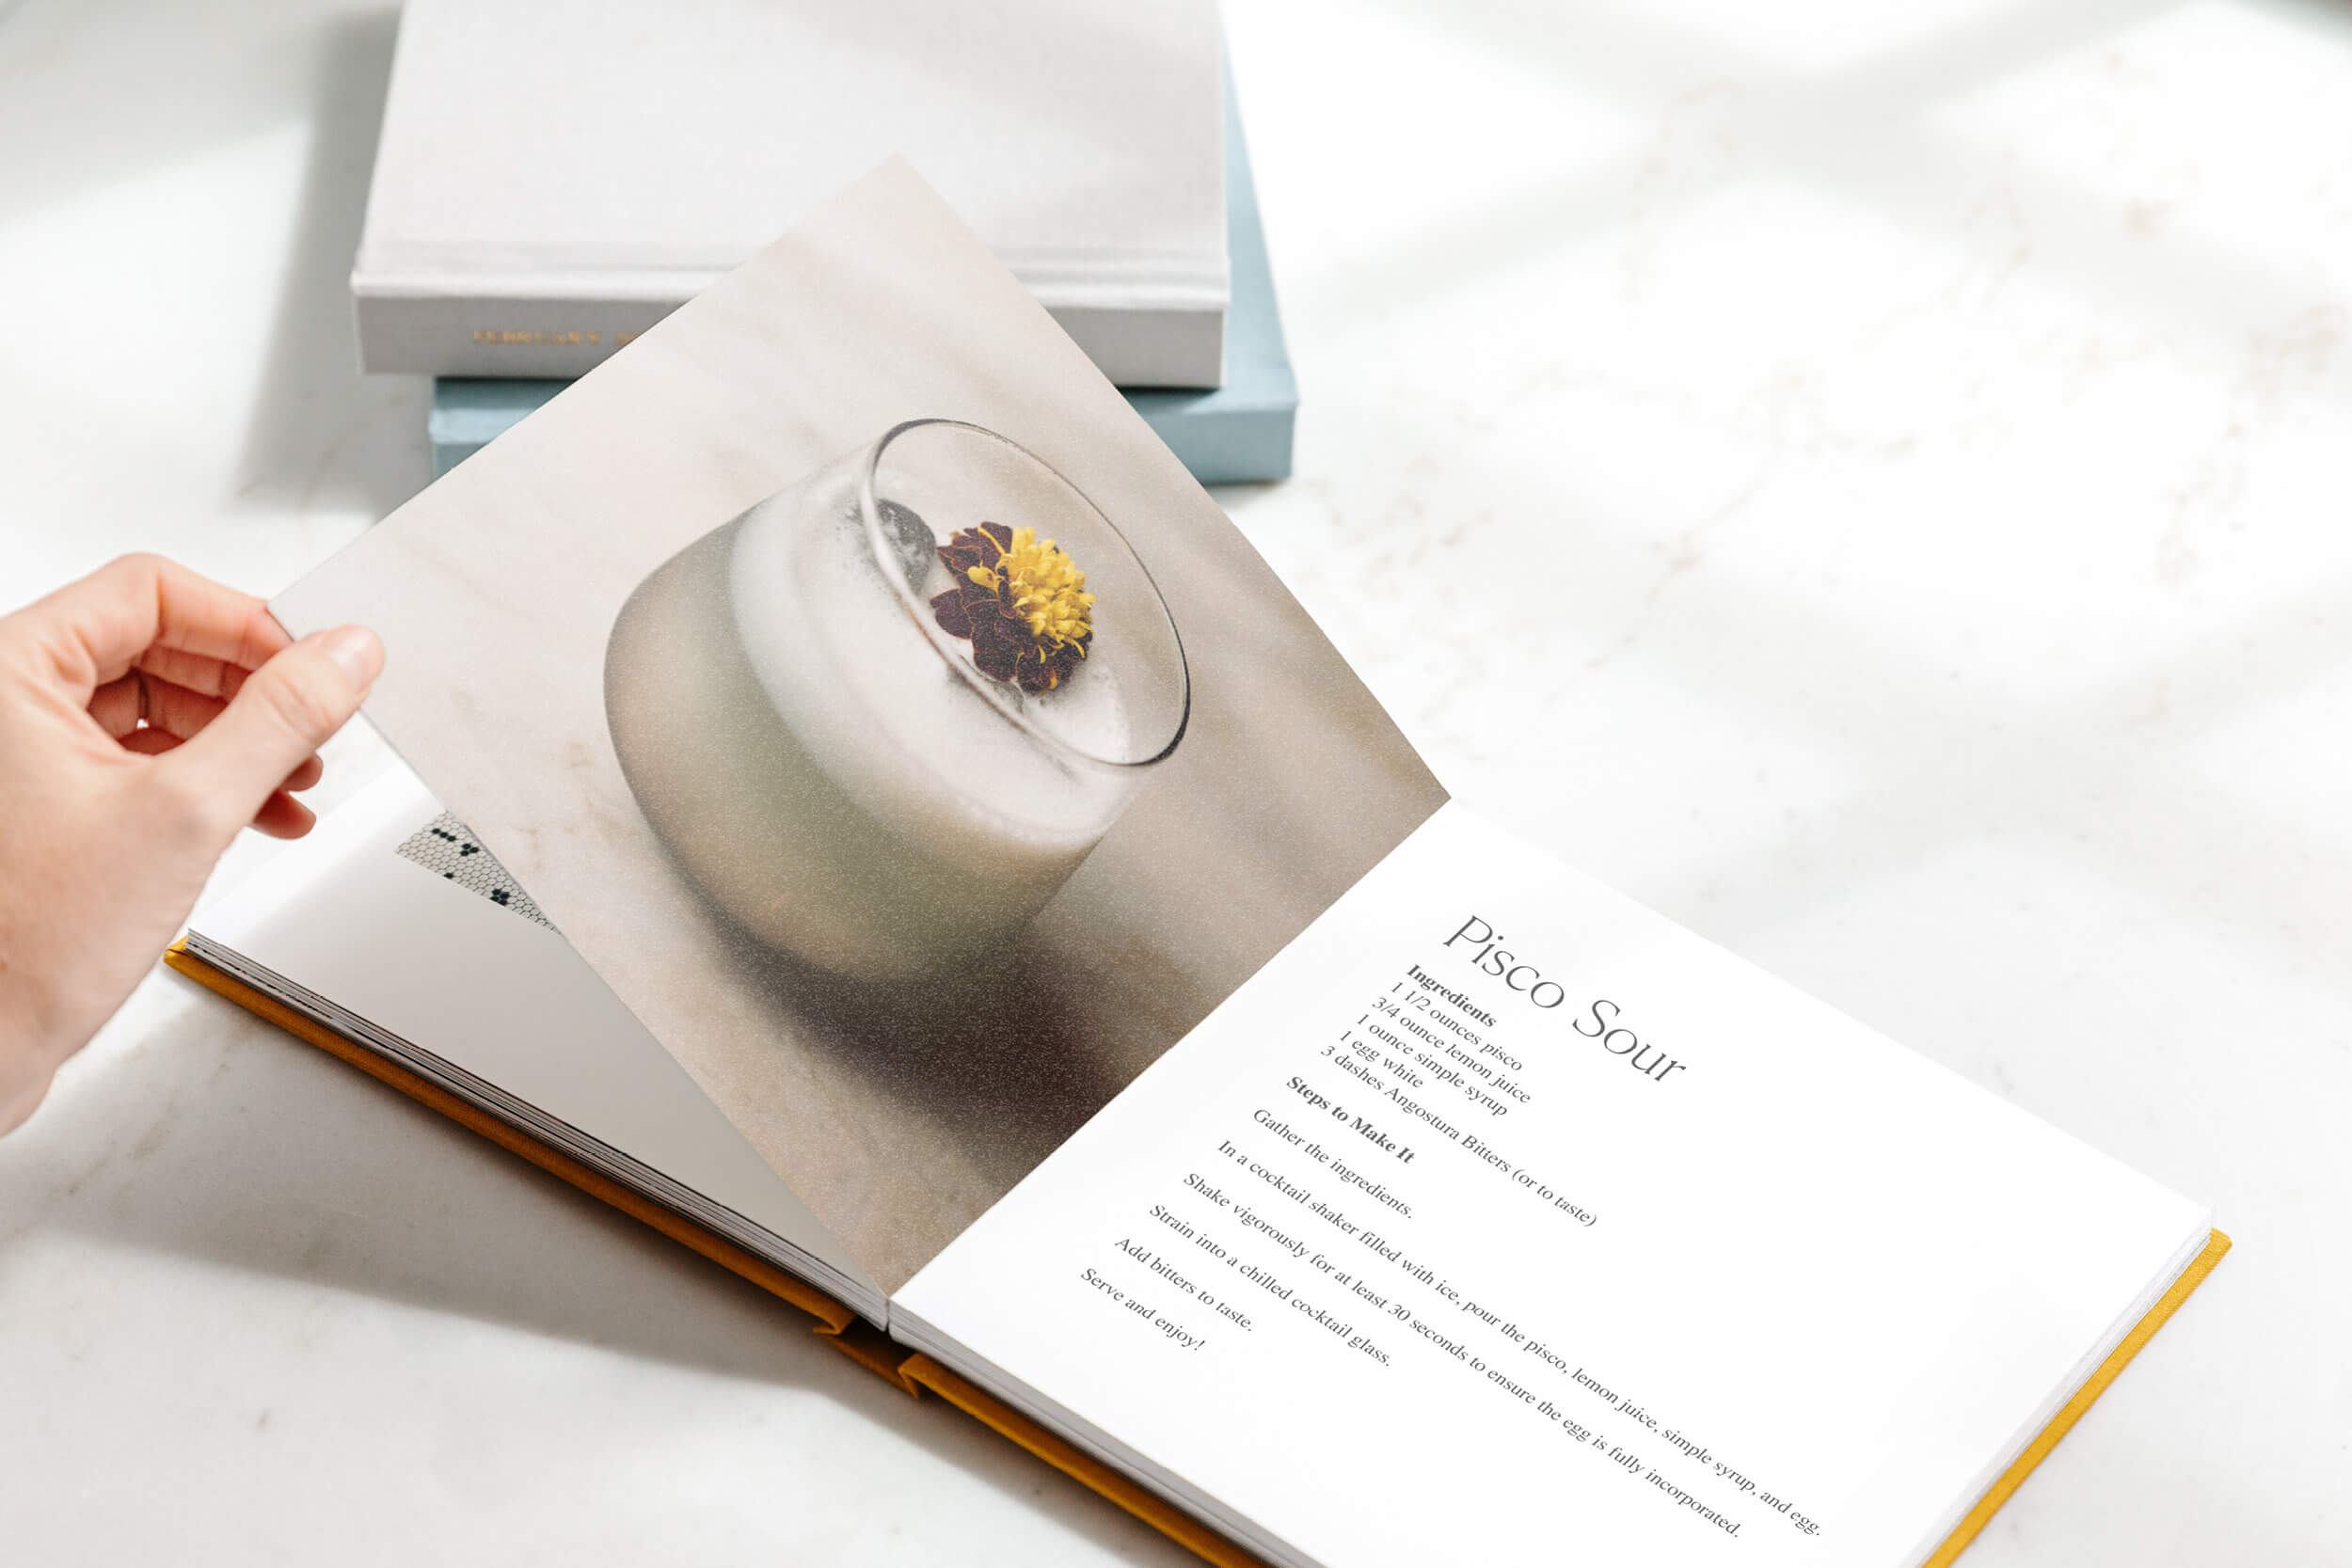 Cocktail book opened to recipe for a pisco sour